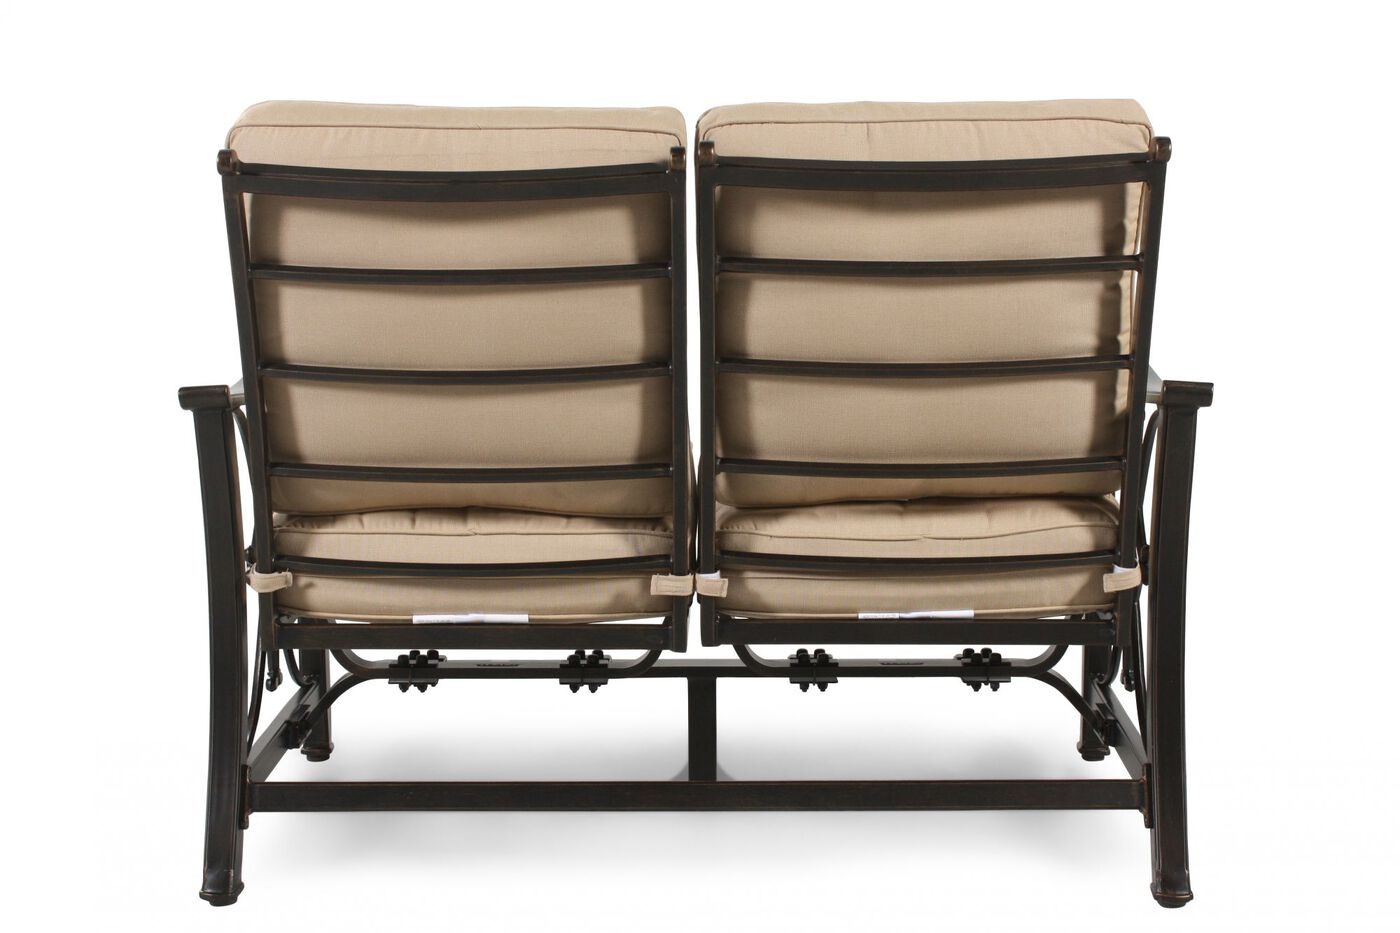 Aluminum Patio Loveseat With Cushion In Beige Mathis Brothers Furniture